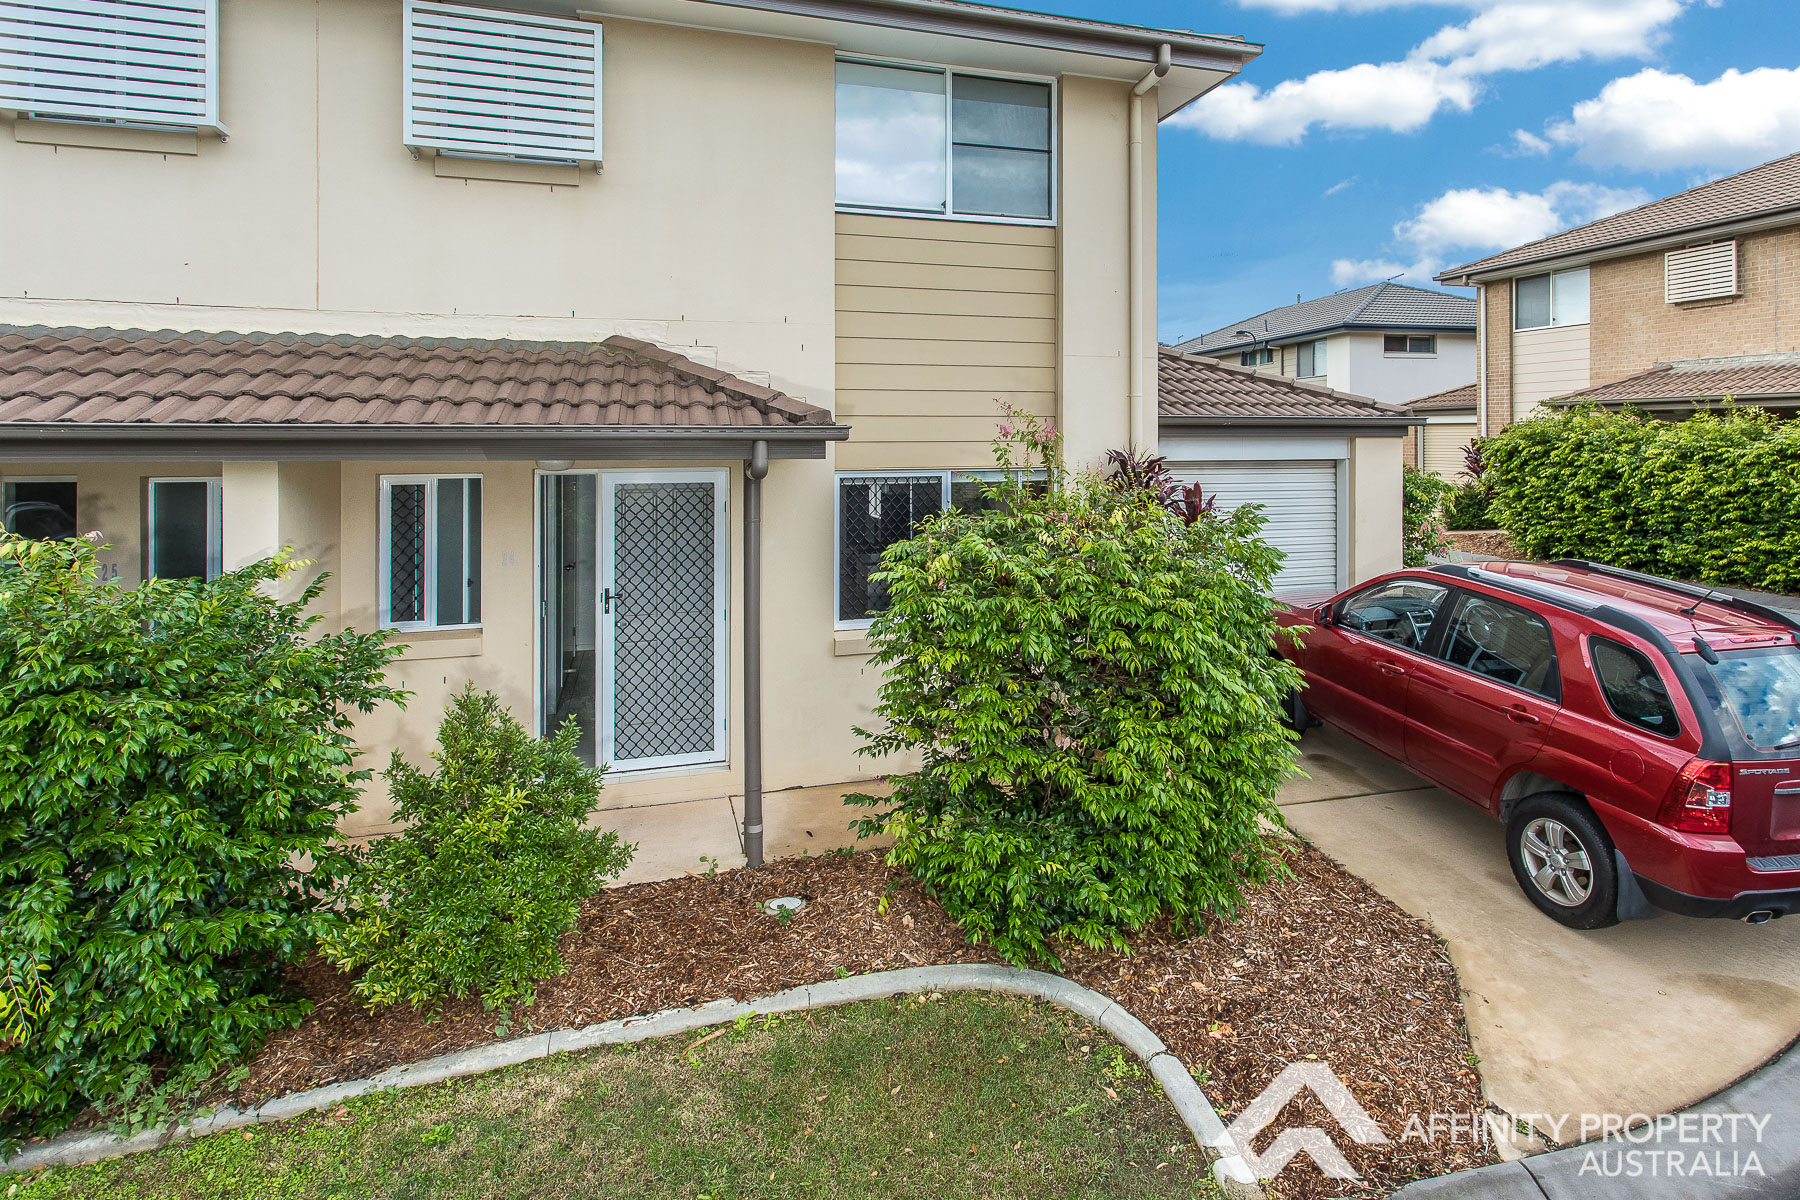 24/38-48 Brays Rd MURRUMBA DOWNS